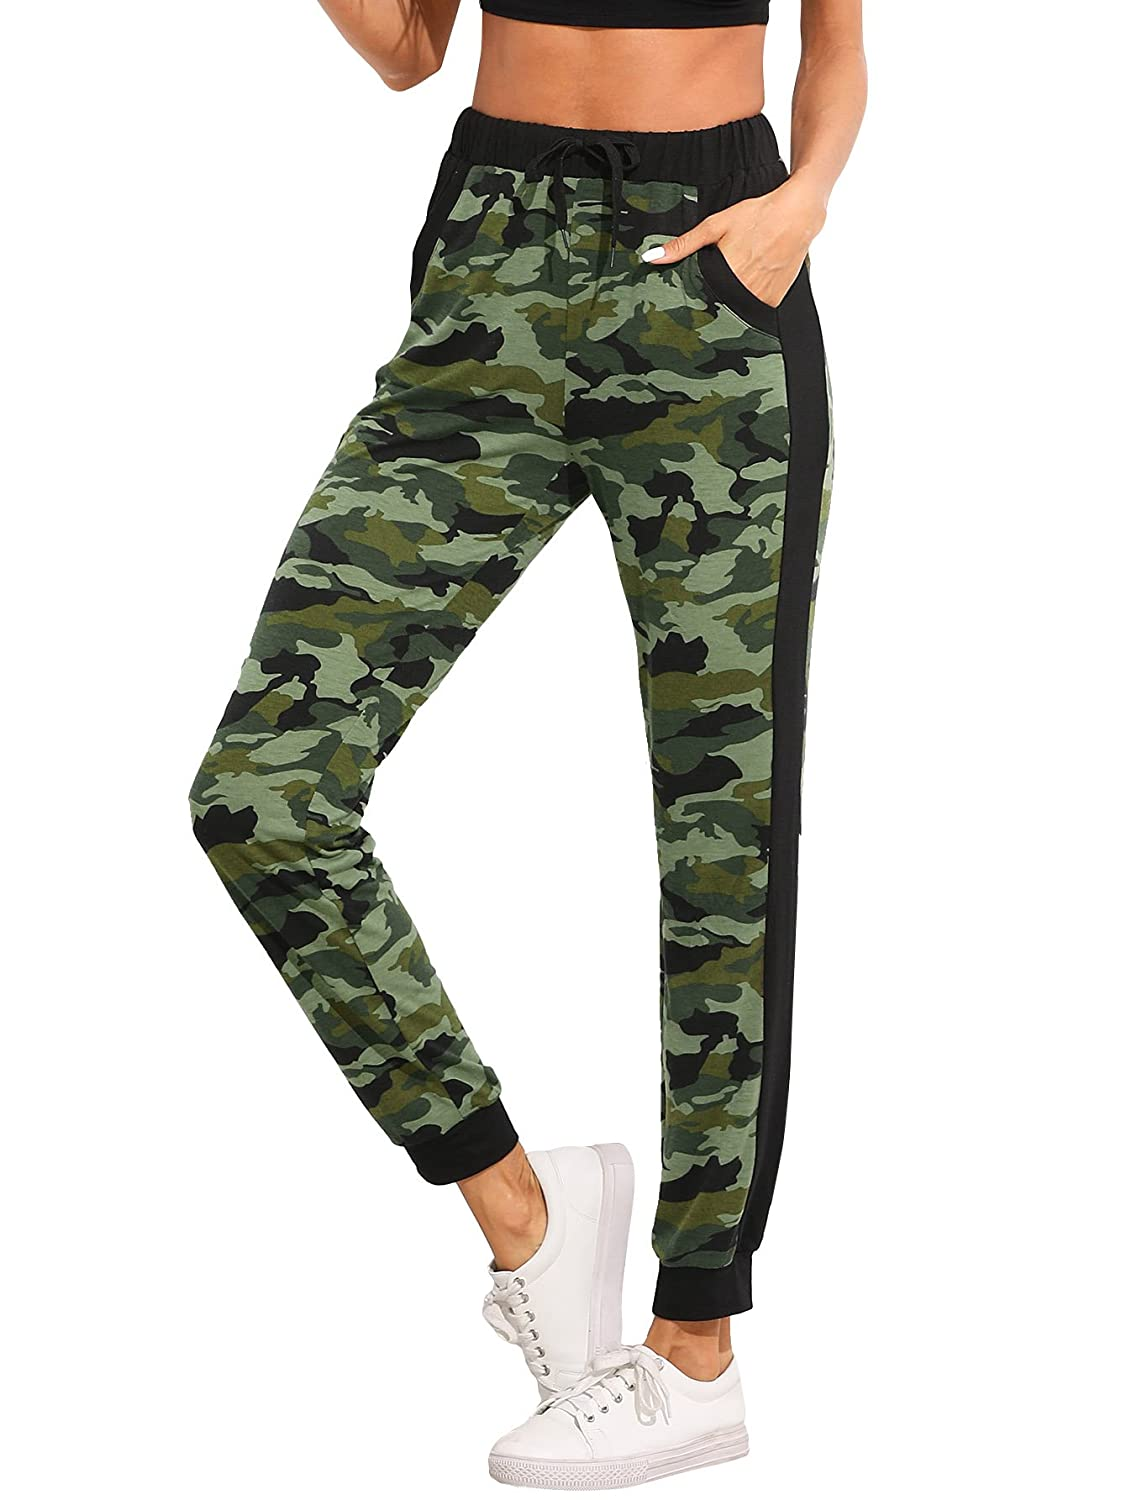 d98b64cd65057 Amazon.com: SweatyRocks Women's Drawstring Casual Joggers Pants with  Pockets: Clothing